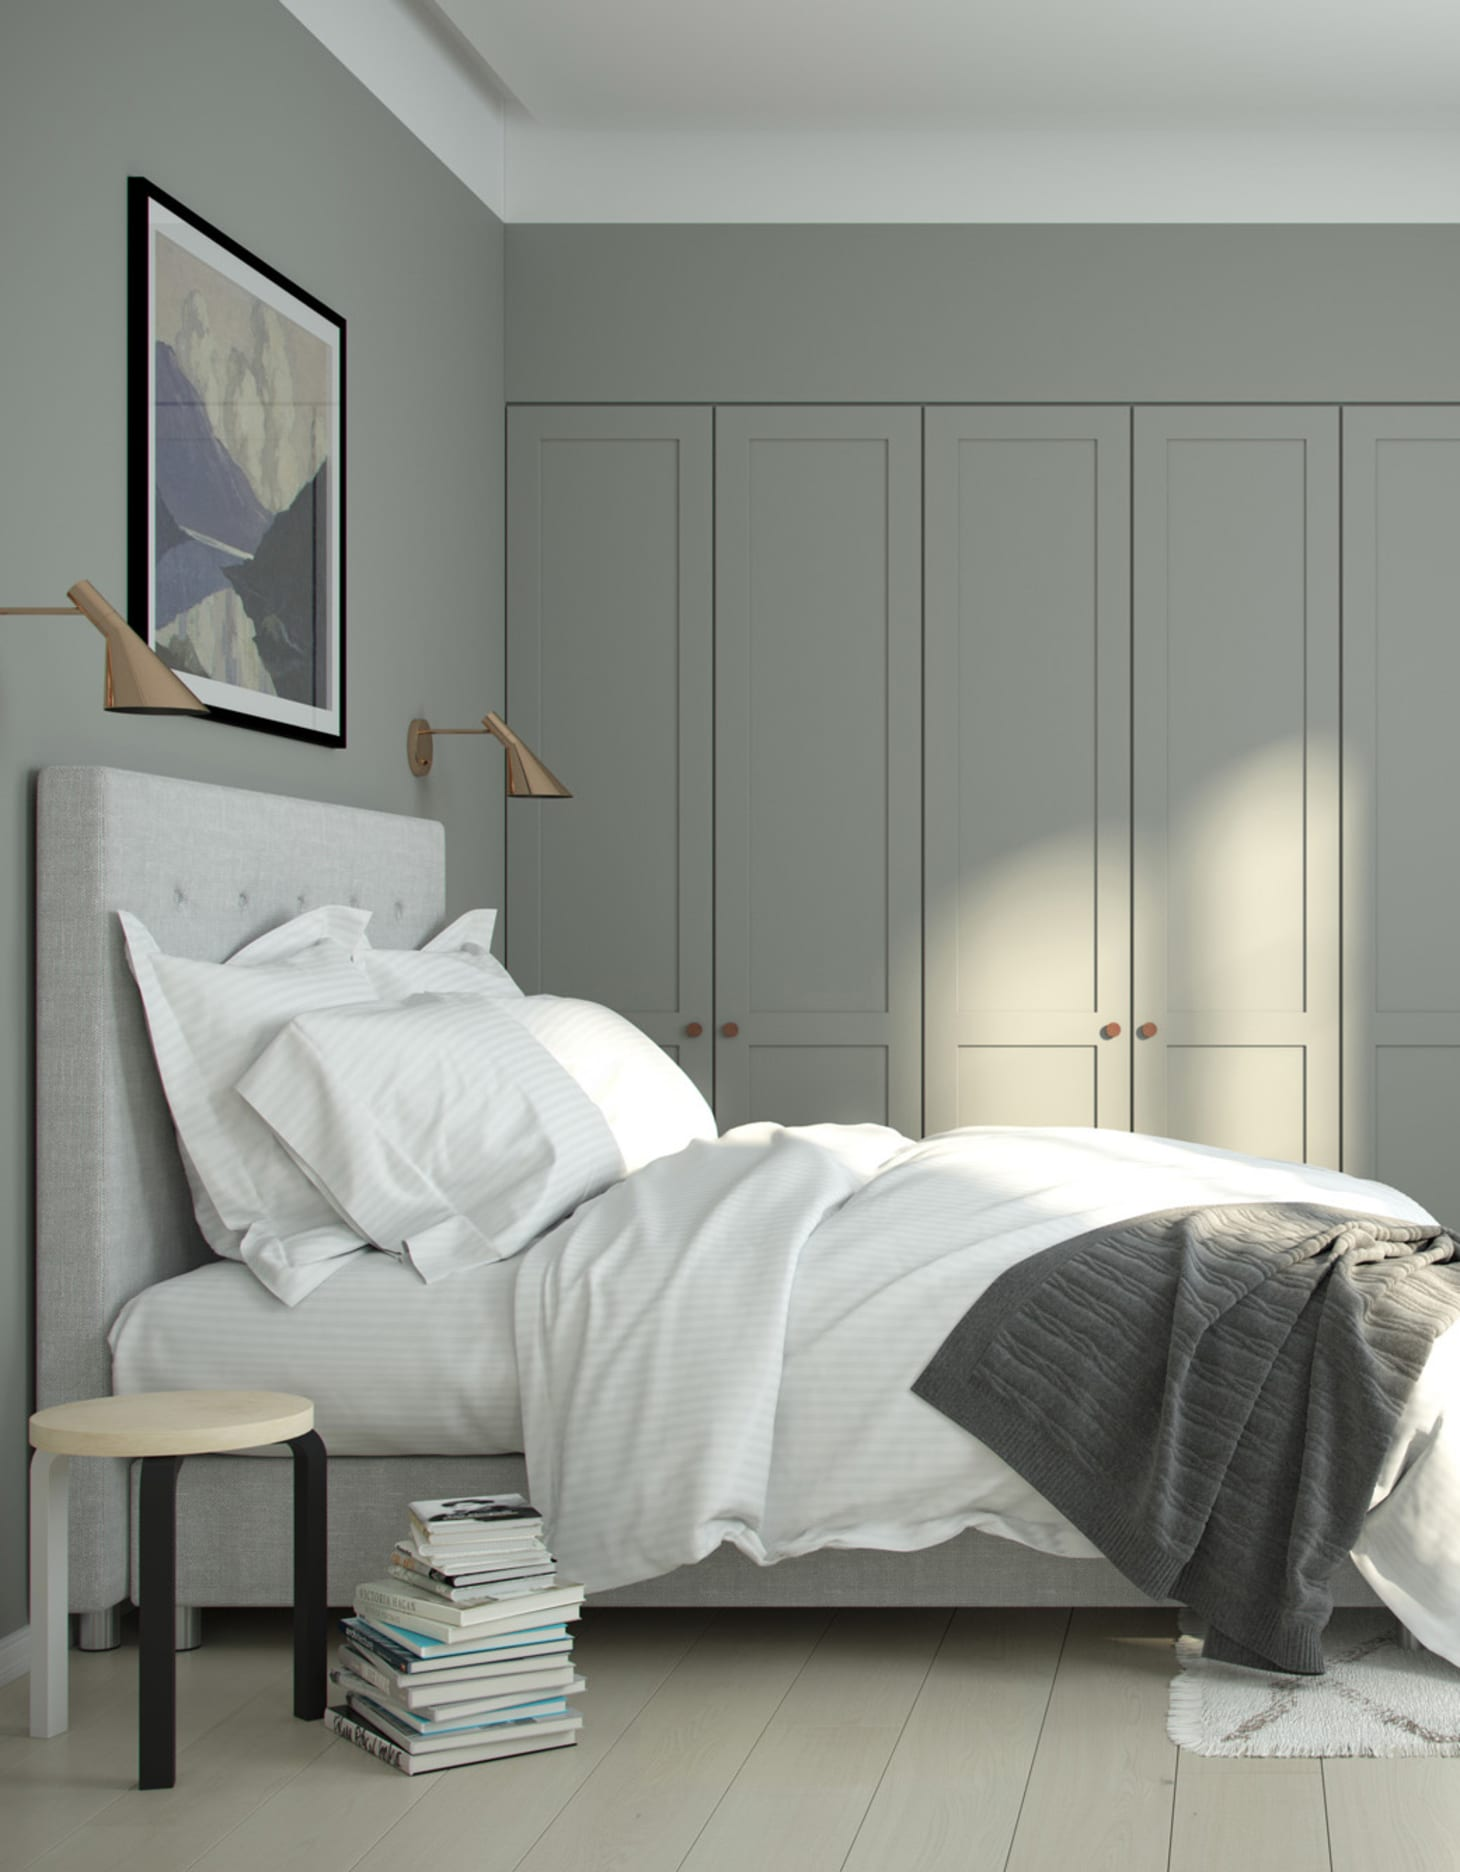 IKEA PAX Wardrobe Hacks That Look Seamless and Built-In